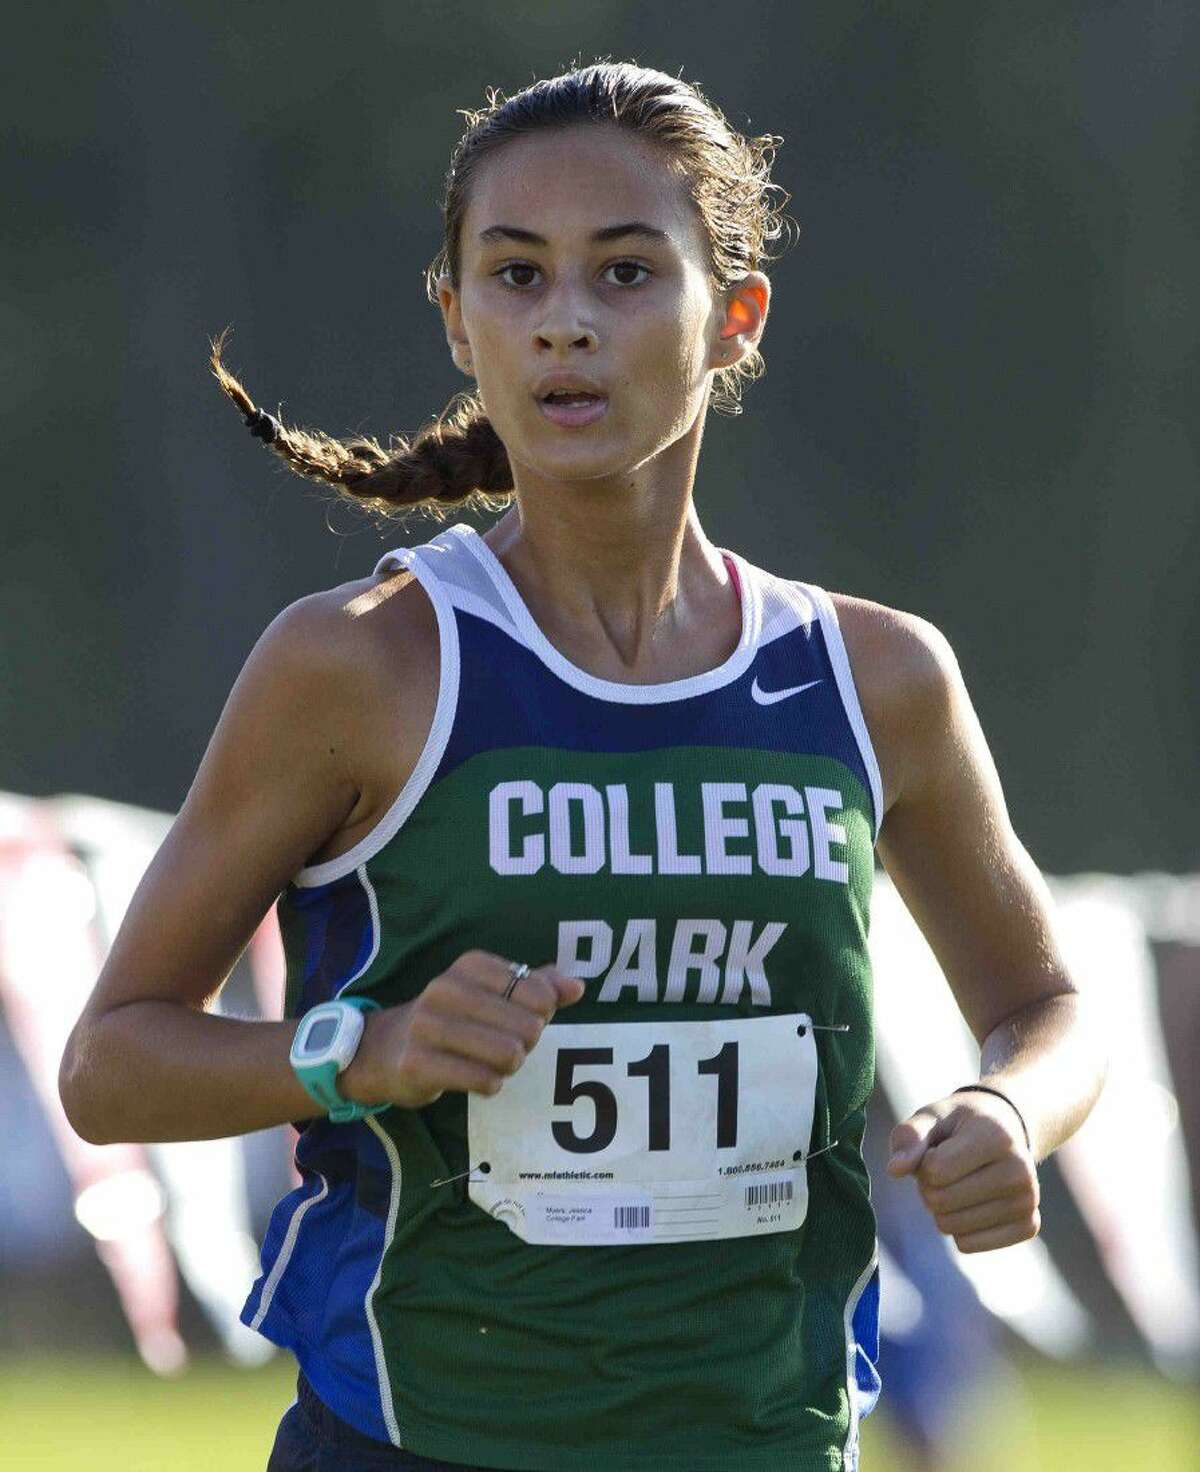 College Park sophomore Jessica Meyers finished second in the varsity girls race during the Oak Ridge Invitational Saturday.